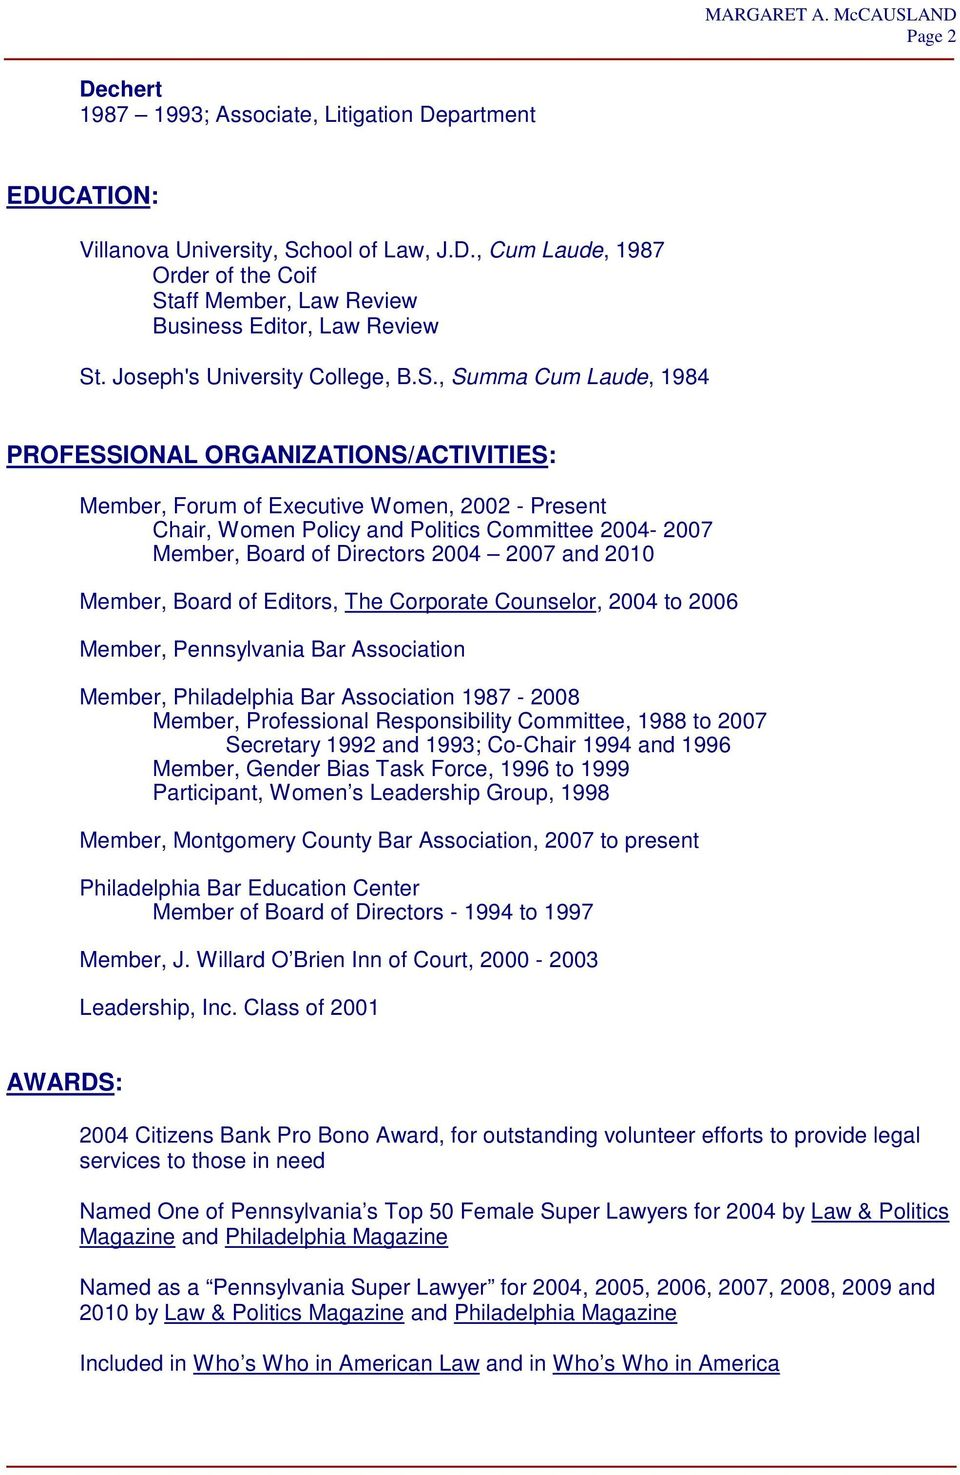 , Summa Cum Laude, 1984 PROFESSIONAL ORGANIZATIONS/ACTIVITIES: Member, Forum of Executive Women, 2002 - Present Chair, Women Policy and Politics Committee 2004-2007 Member, Board of Directors 2004